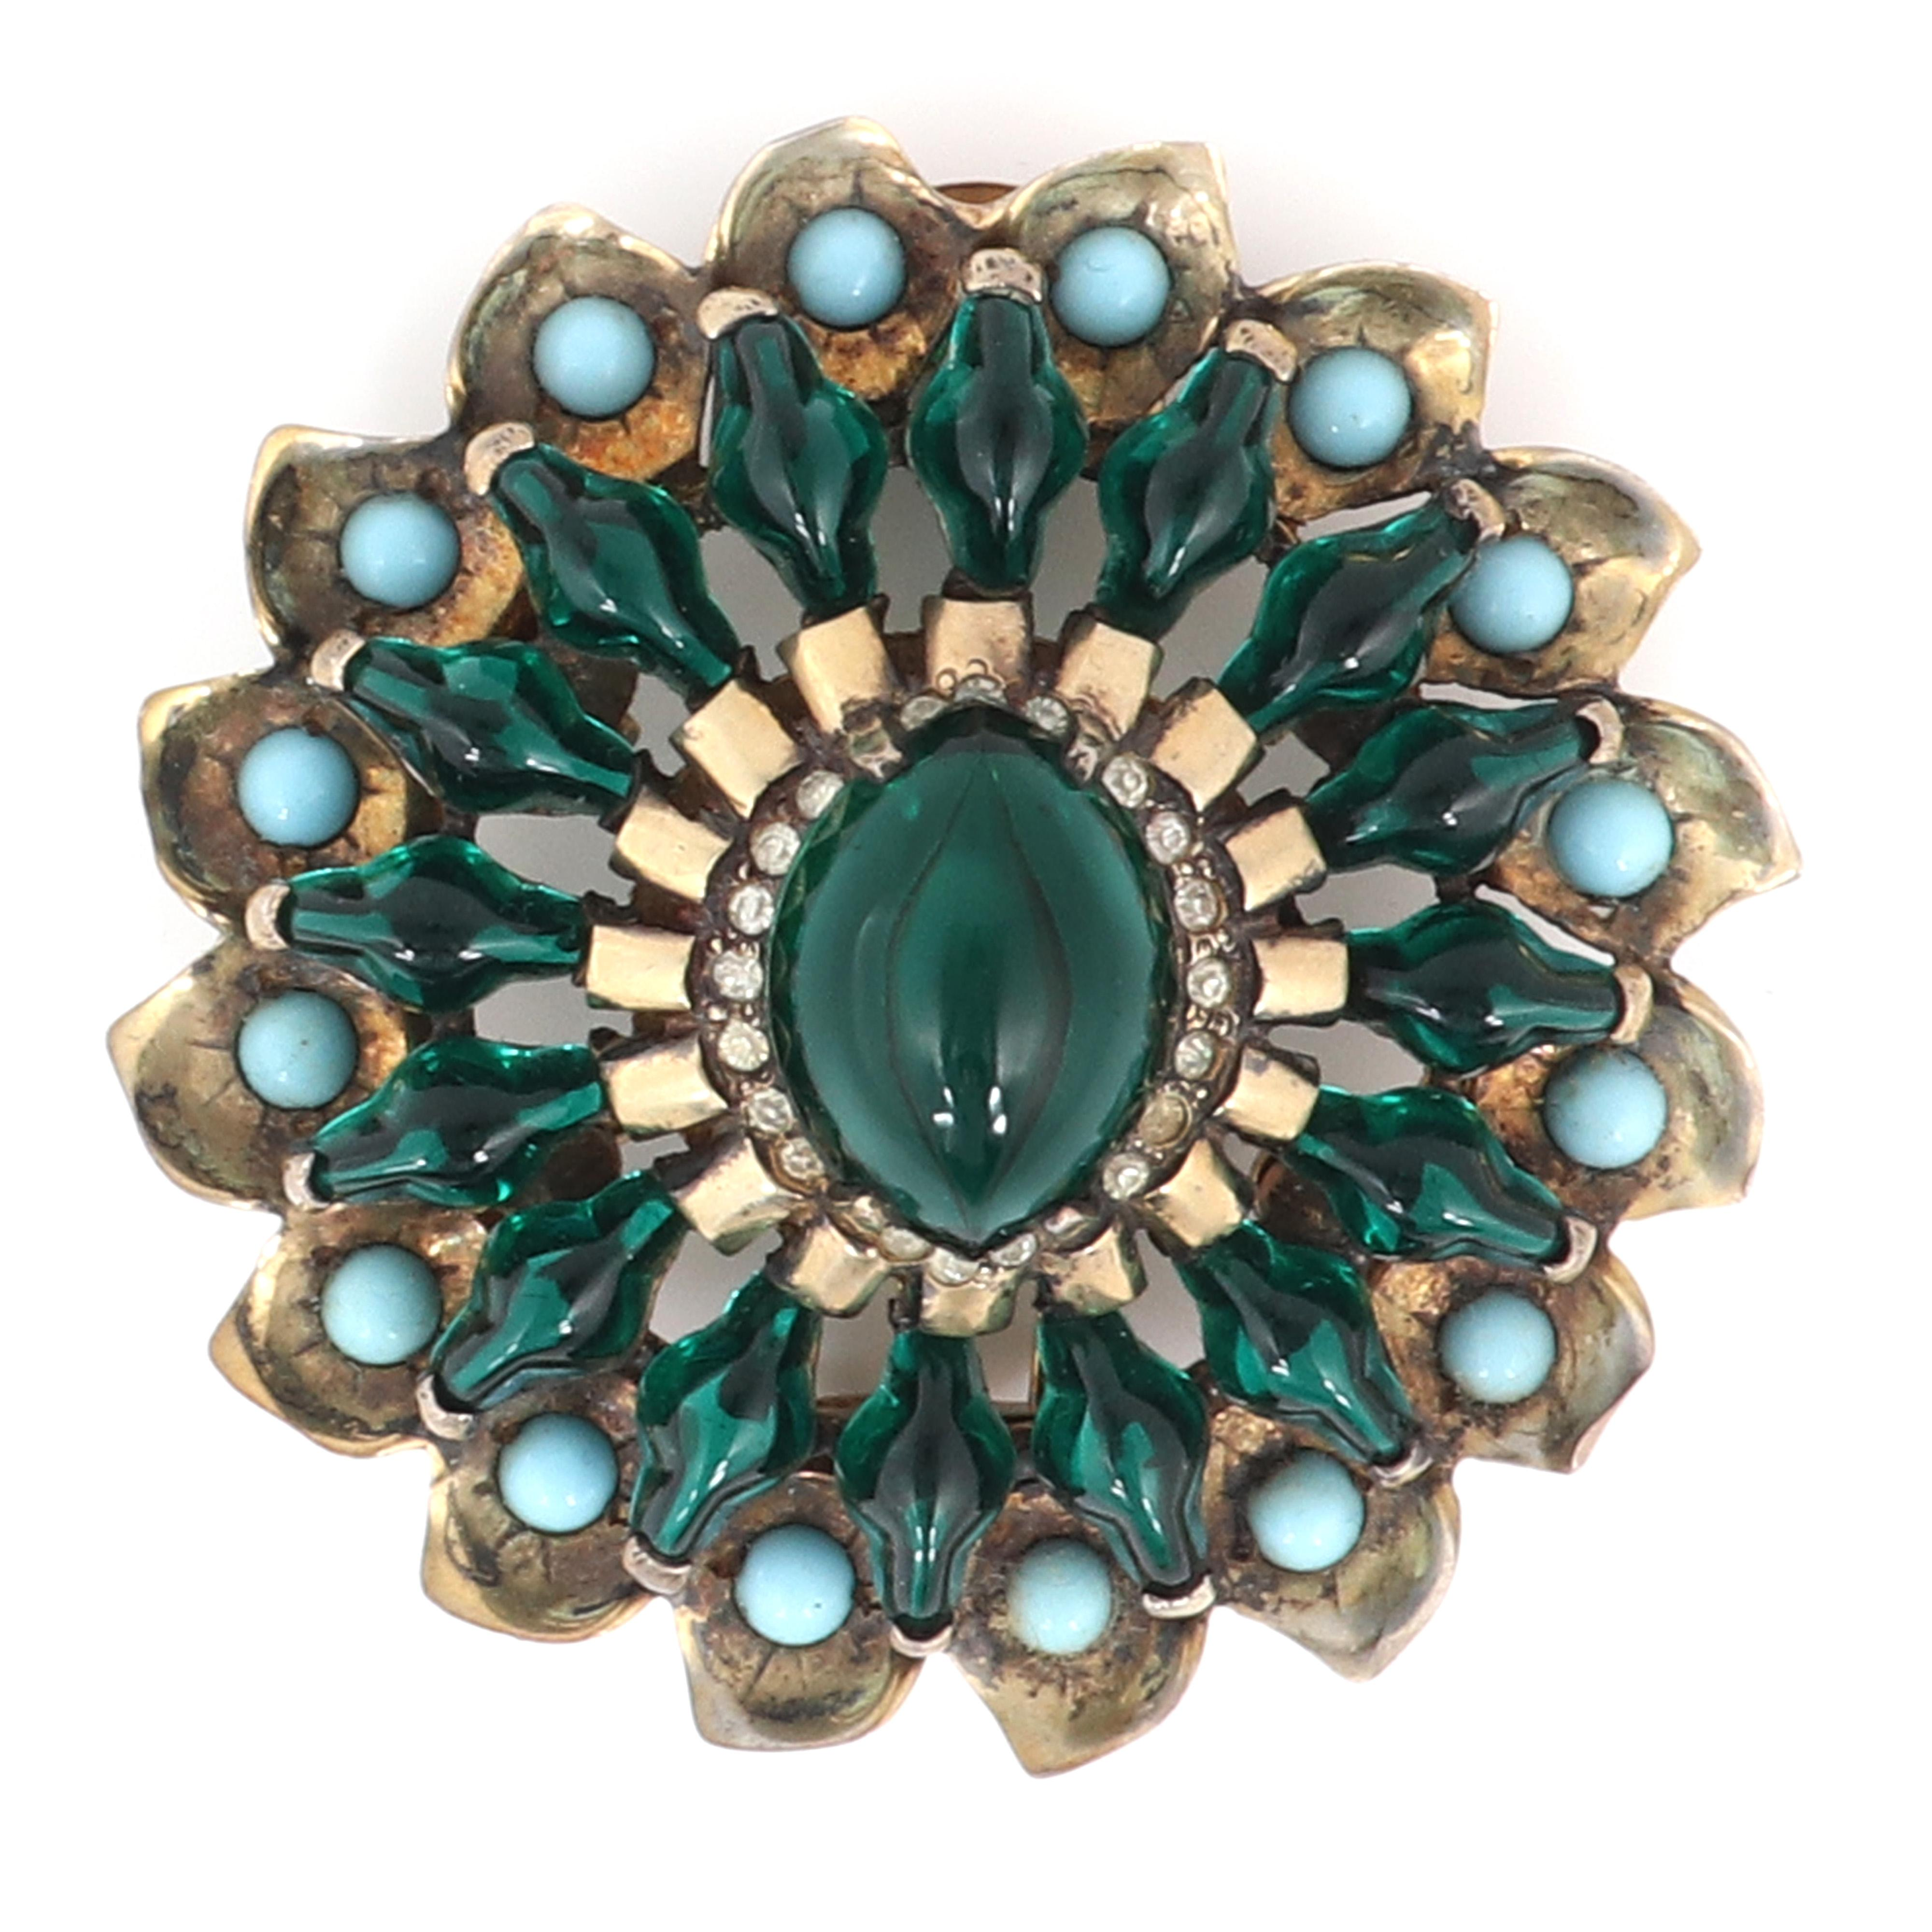 "Eisenberg Original sterling vermeil dimensional floral fur clip with large emerald glass cabochon, surrounded by pave, unique green glass beads & faux turquoise beads, c. 1945. 2 1/2"" diam."